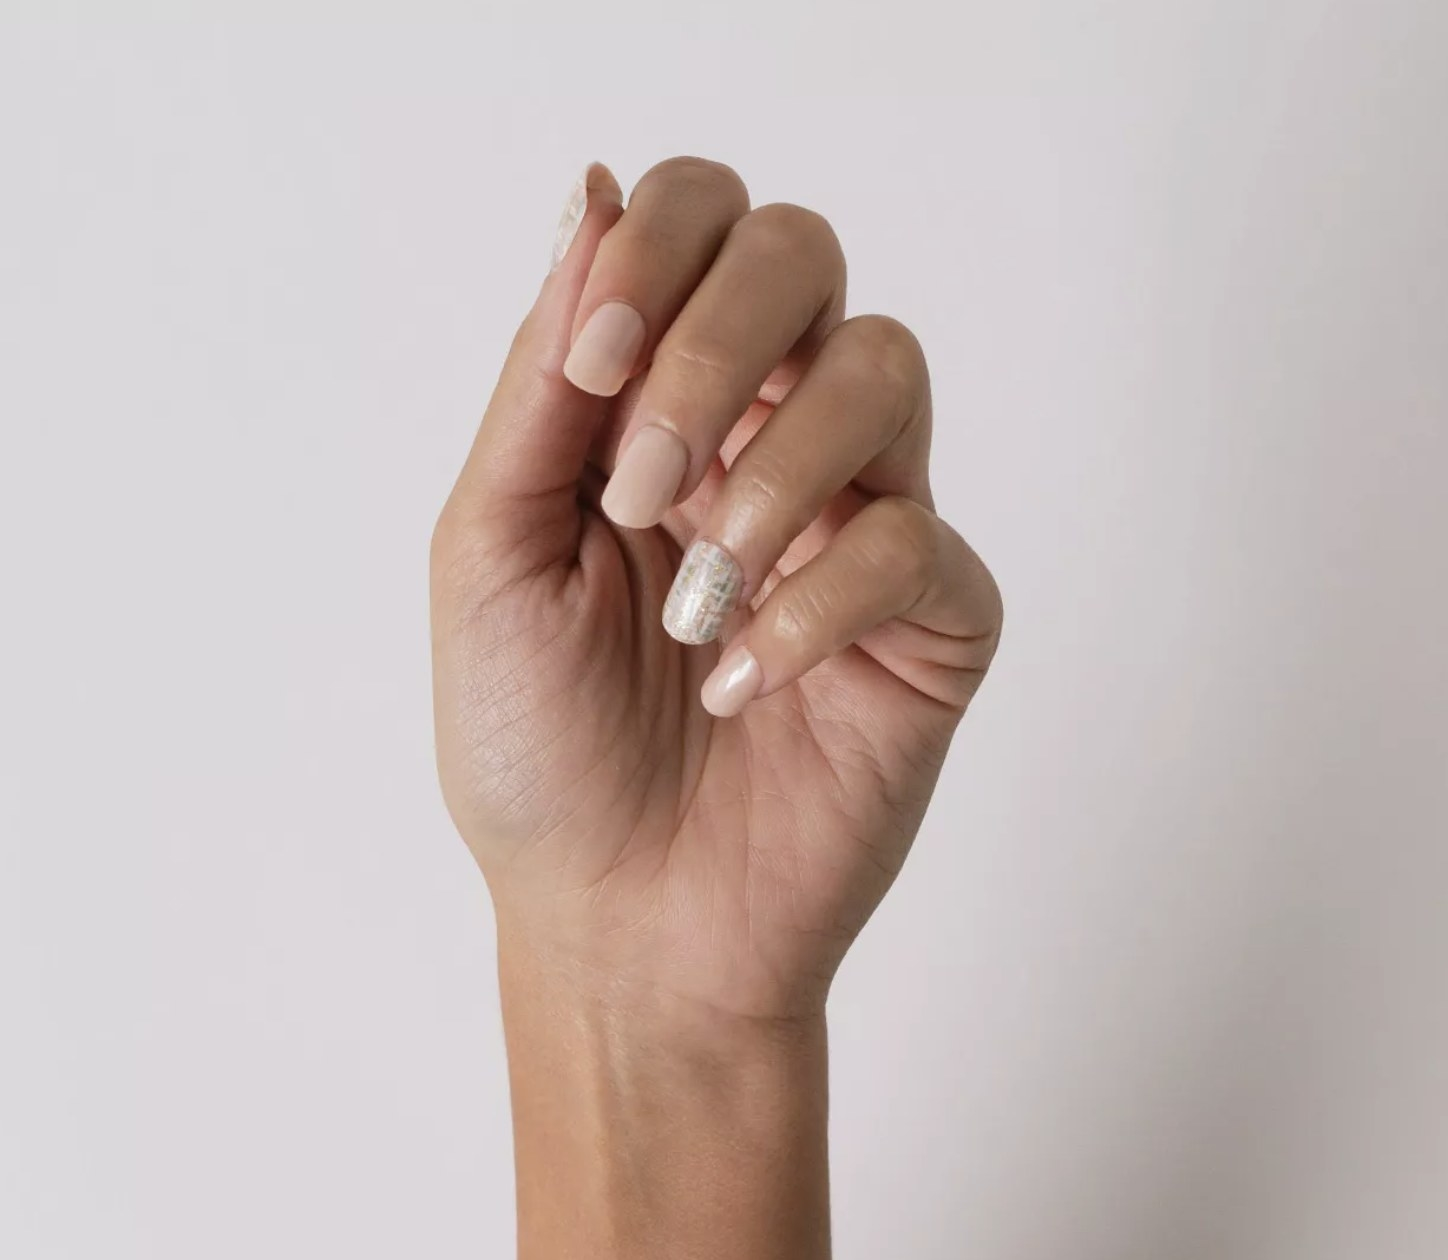 Person is showing their fake nails